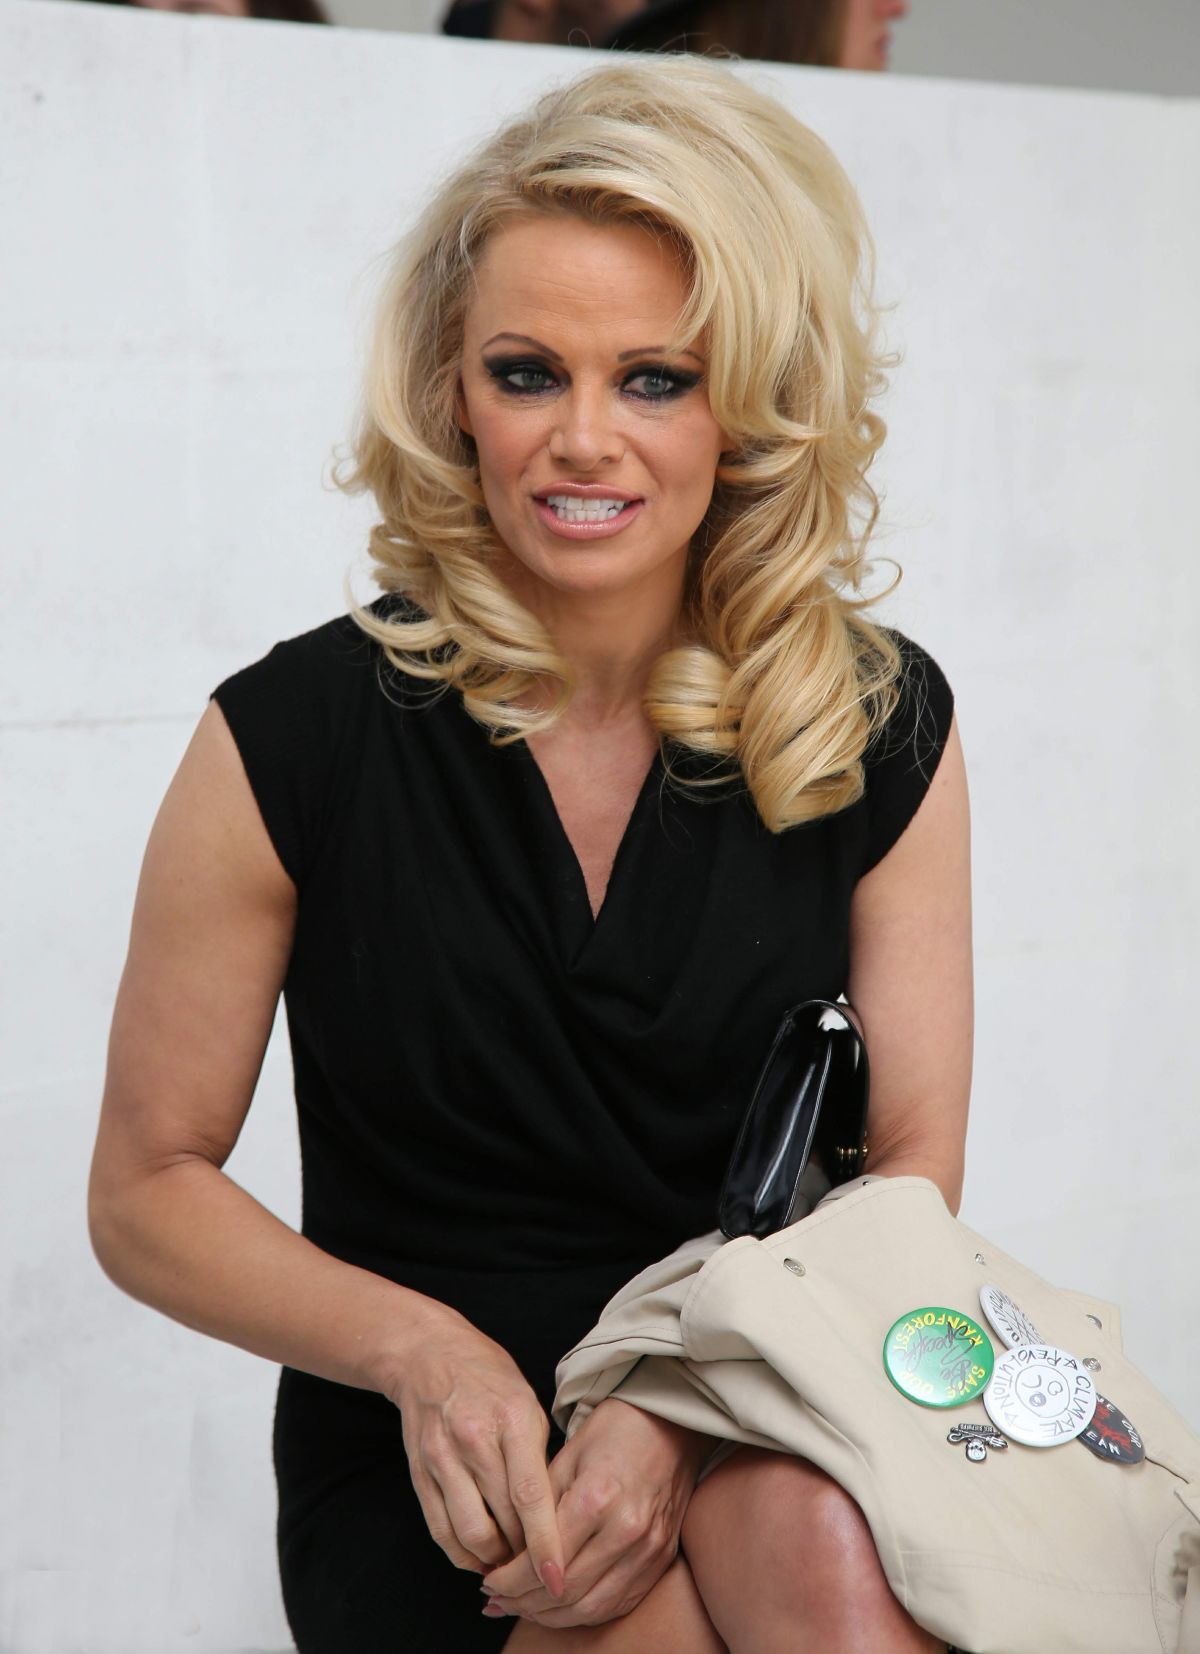 pamela anderson at amelie pichard x pamela anderson shoe collection launch 01 21 201 hawtcelebs. Black Bedroom Furniture Sets. Home Design Ideas